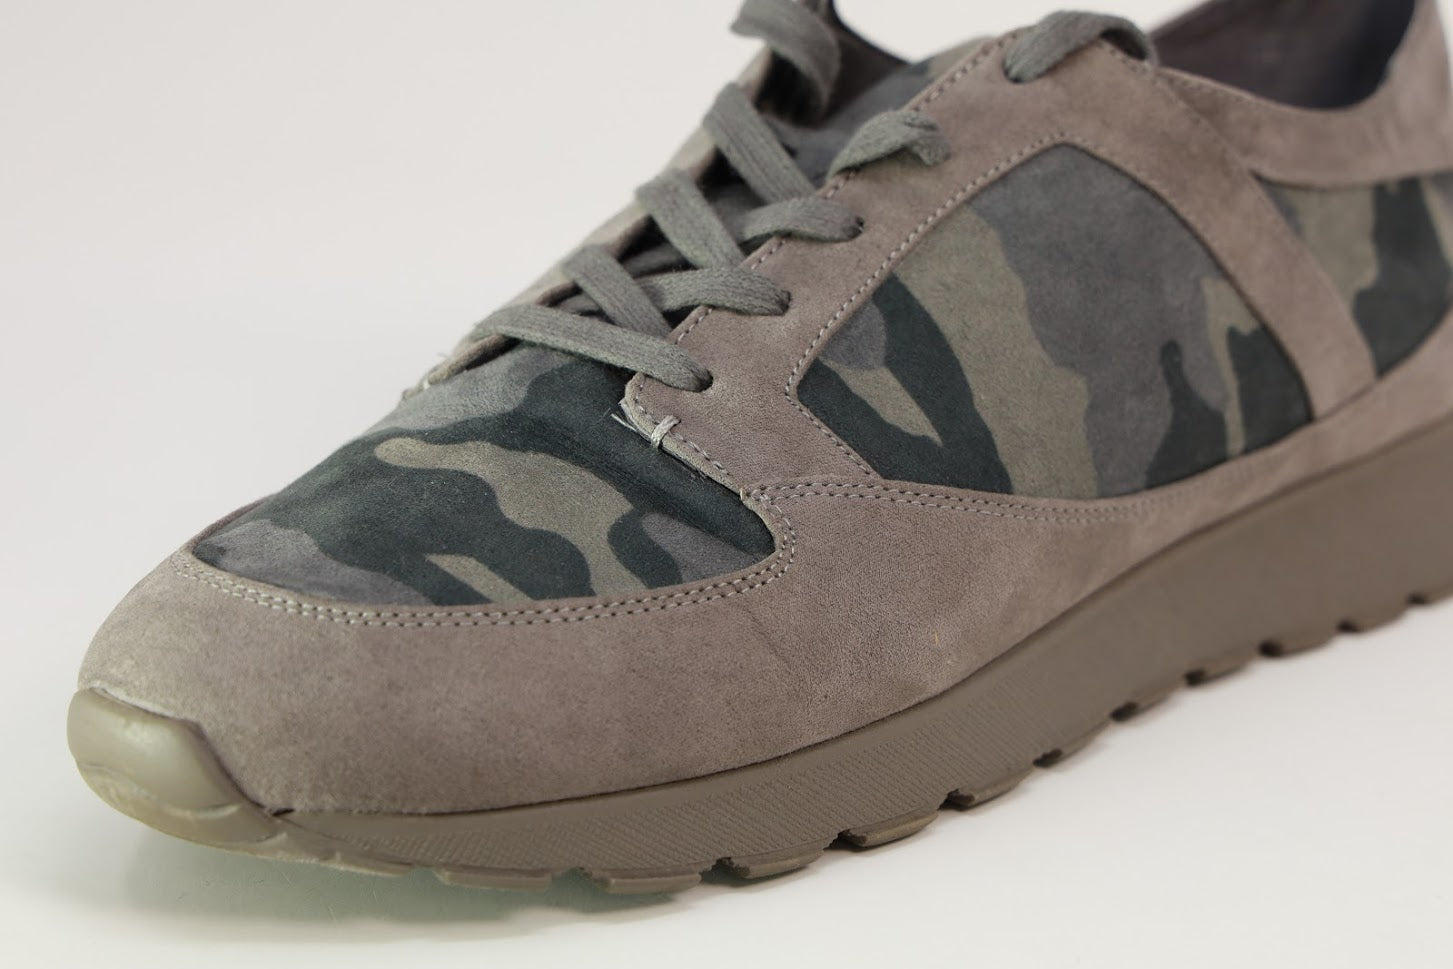 G.I.L.I. Lace-up Camo Sneakers- Janna